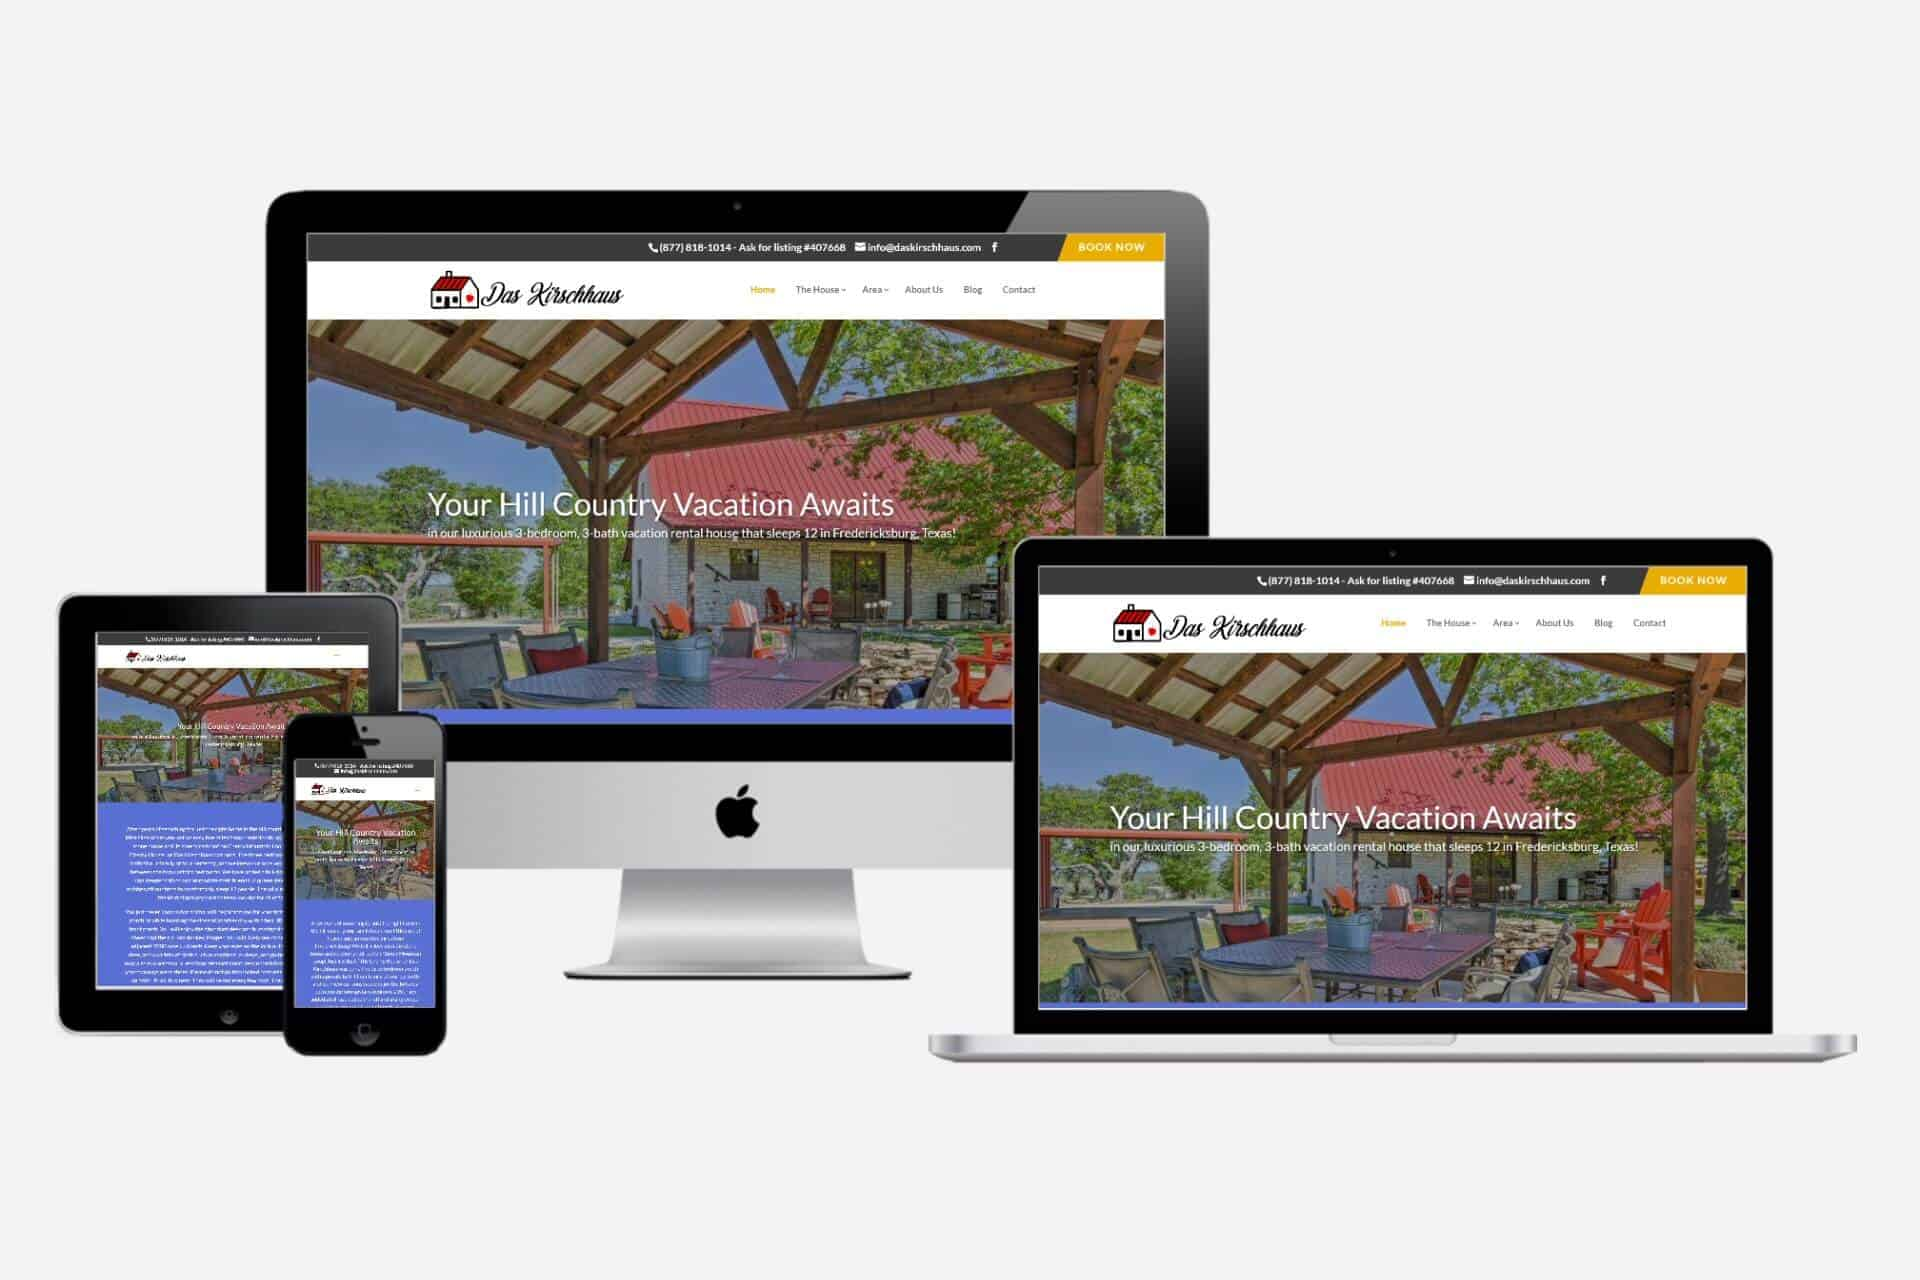 Das Kirschaus Website Design by WizardsWebs Design LLC